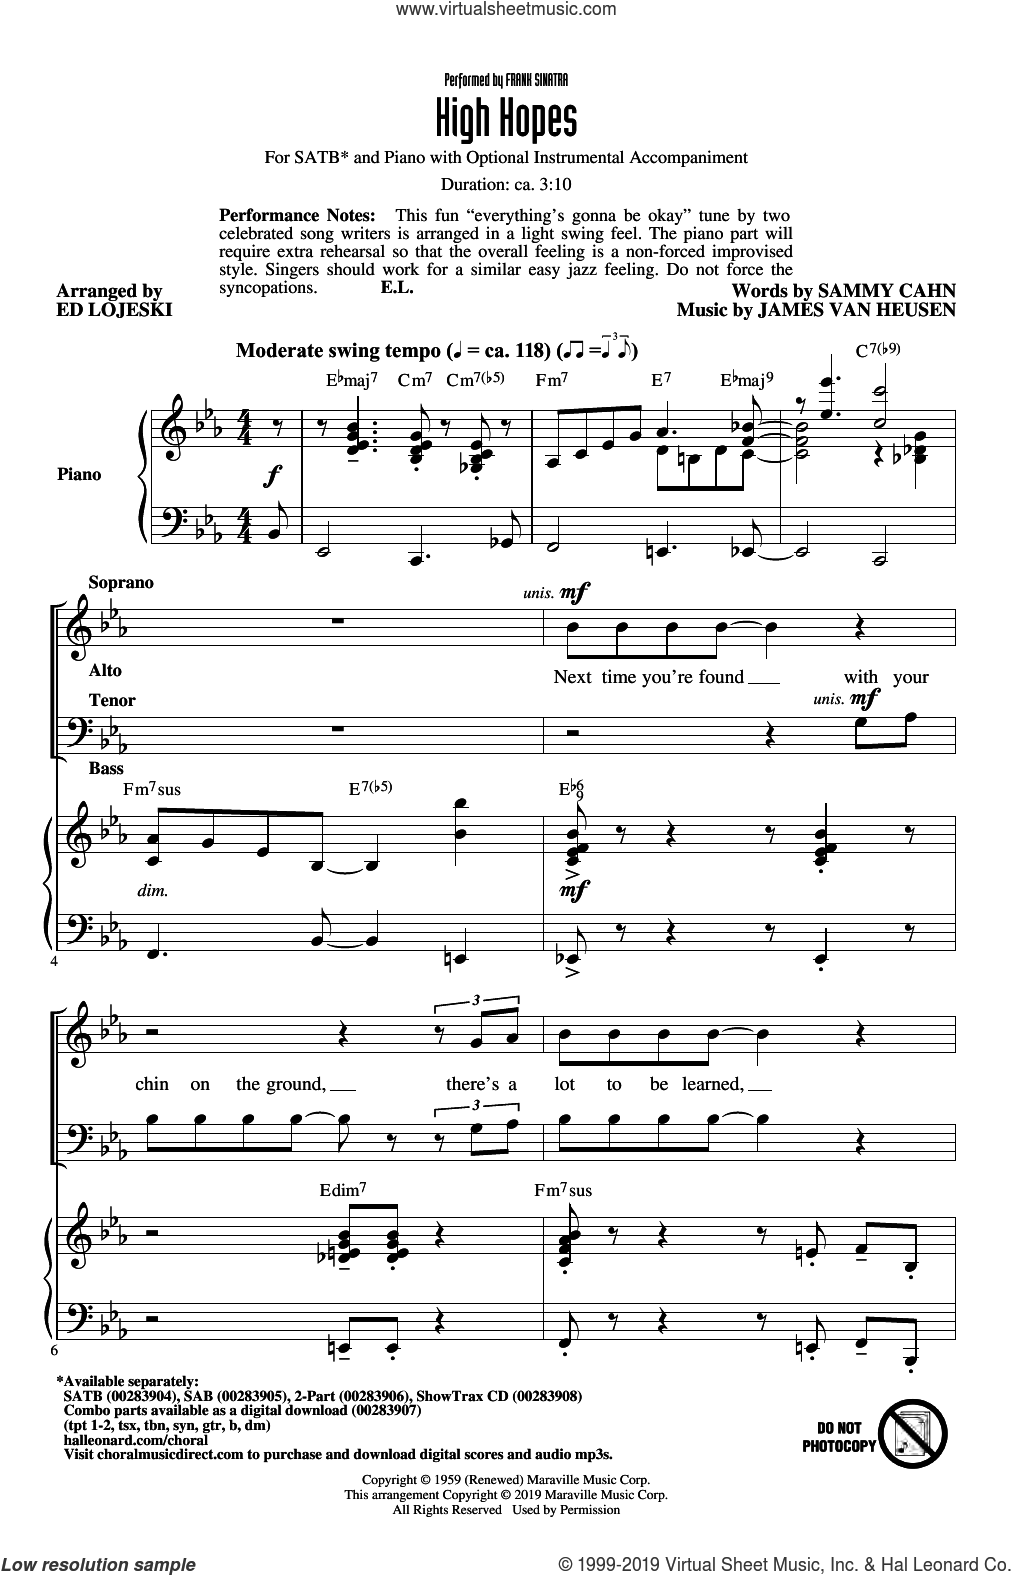 High Hopes (arr. Ed Lojeski) sheet music for choir (SATB: soprano, alto, tenor, bass) by Frank Sinatra, Ed Lojeski, Jimmy van Heusen and Sammy Cahn, intermediate skill level